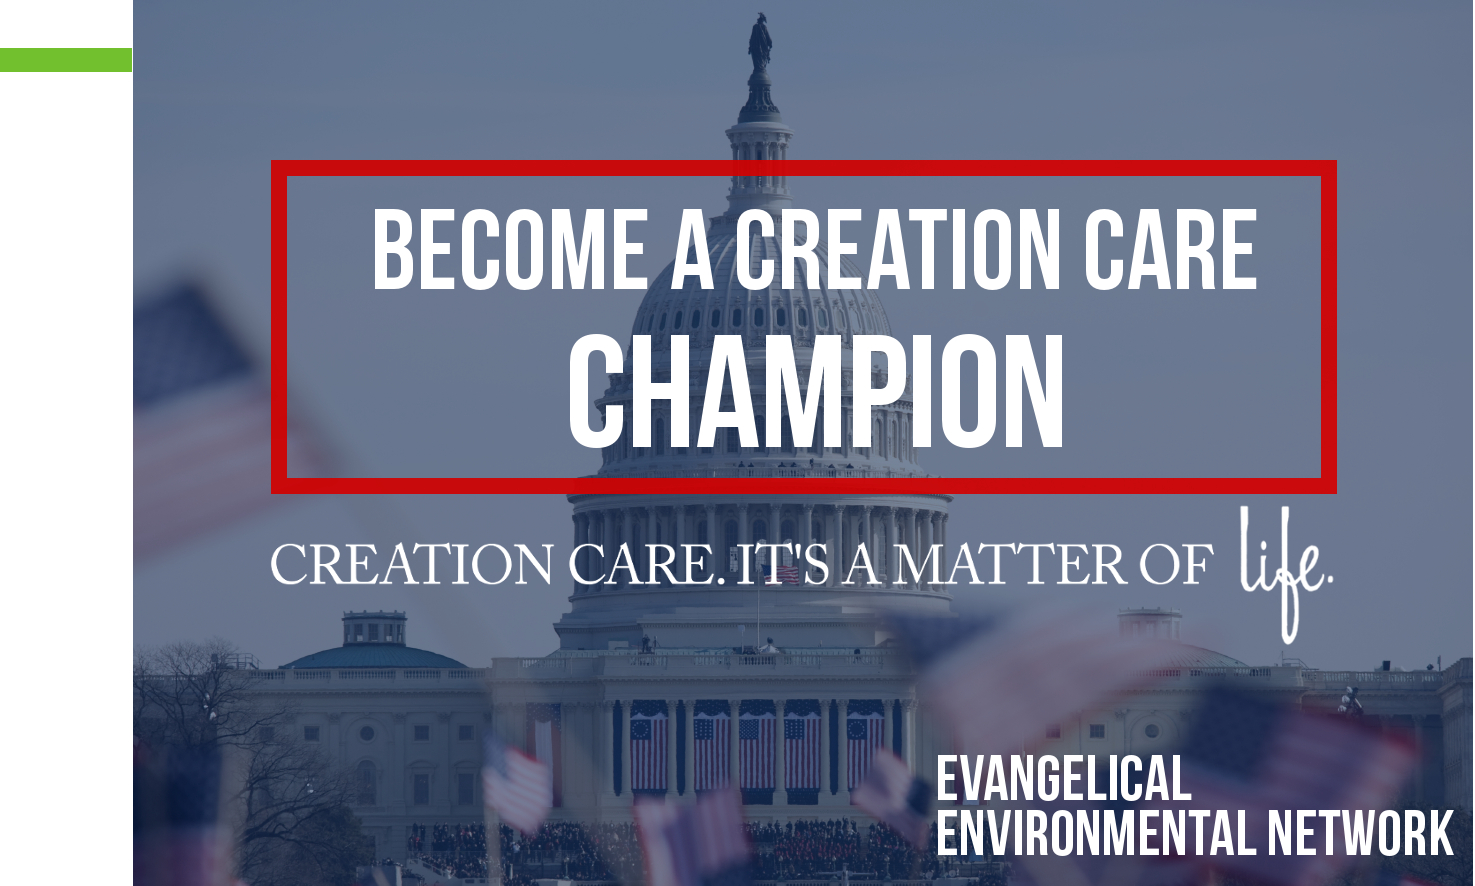 Creation_Care_Champion.JPG